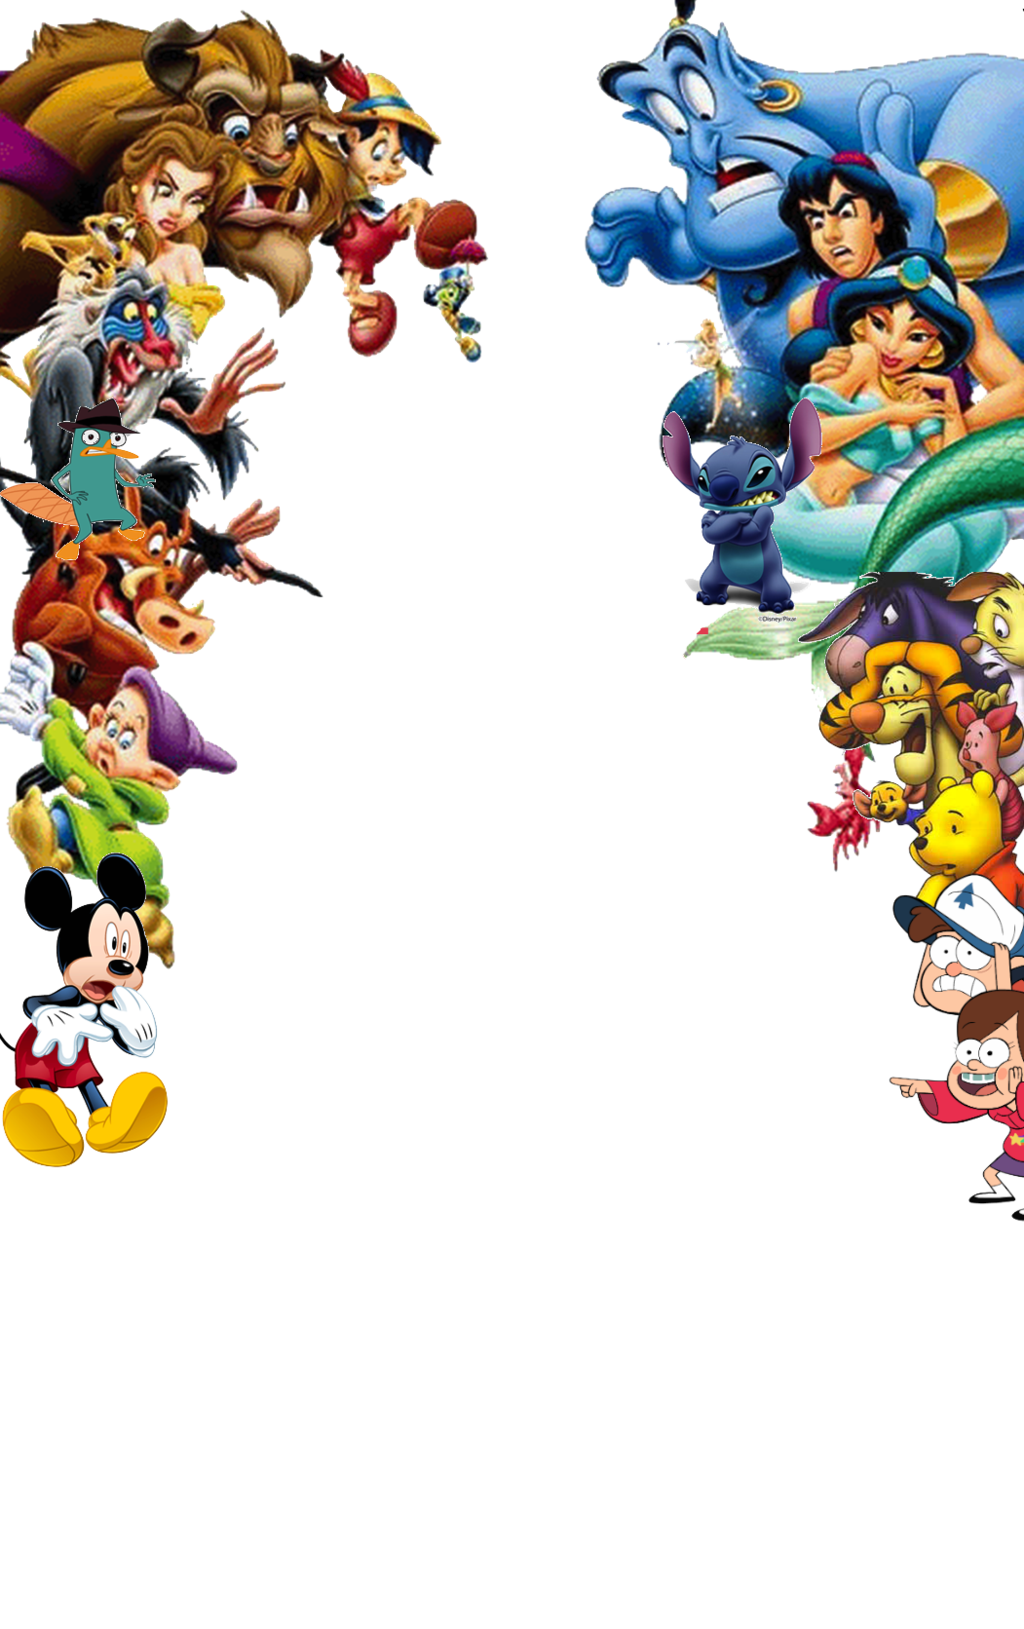 Disney Characters Shocked By Edogg8181804 On Deviantart Disney Characters Disney Characters Png Disney Characters Images